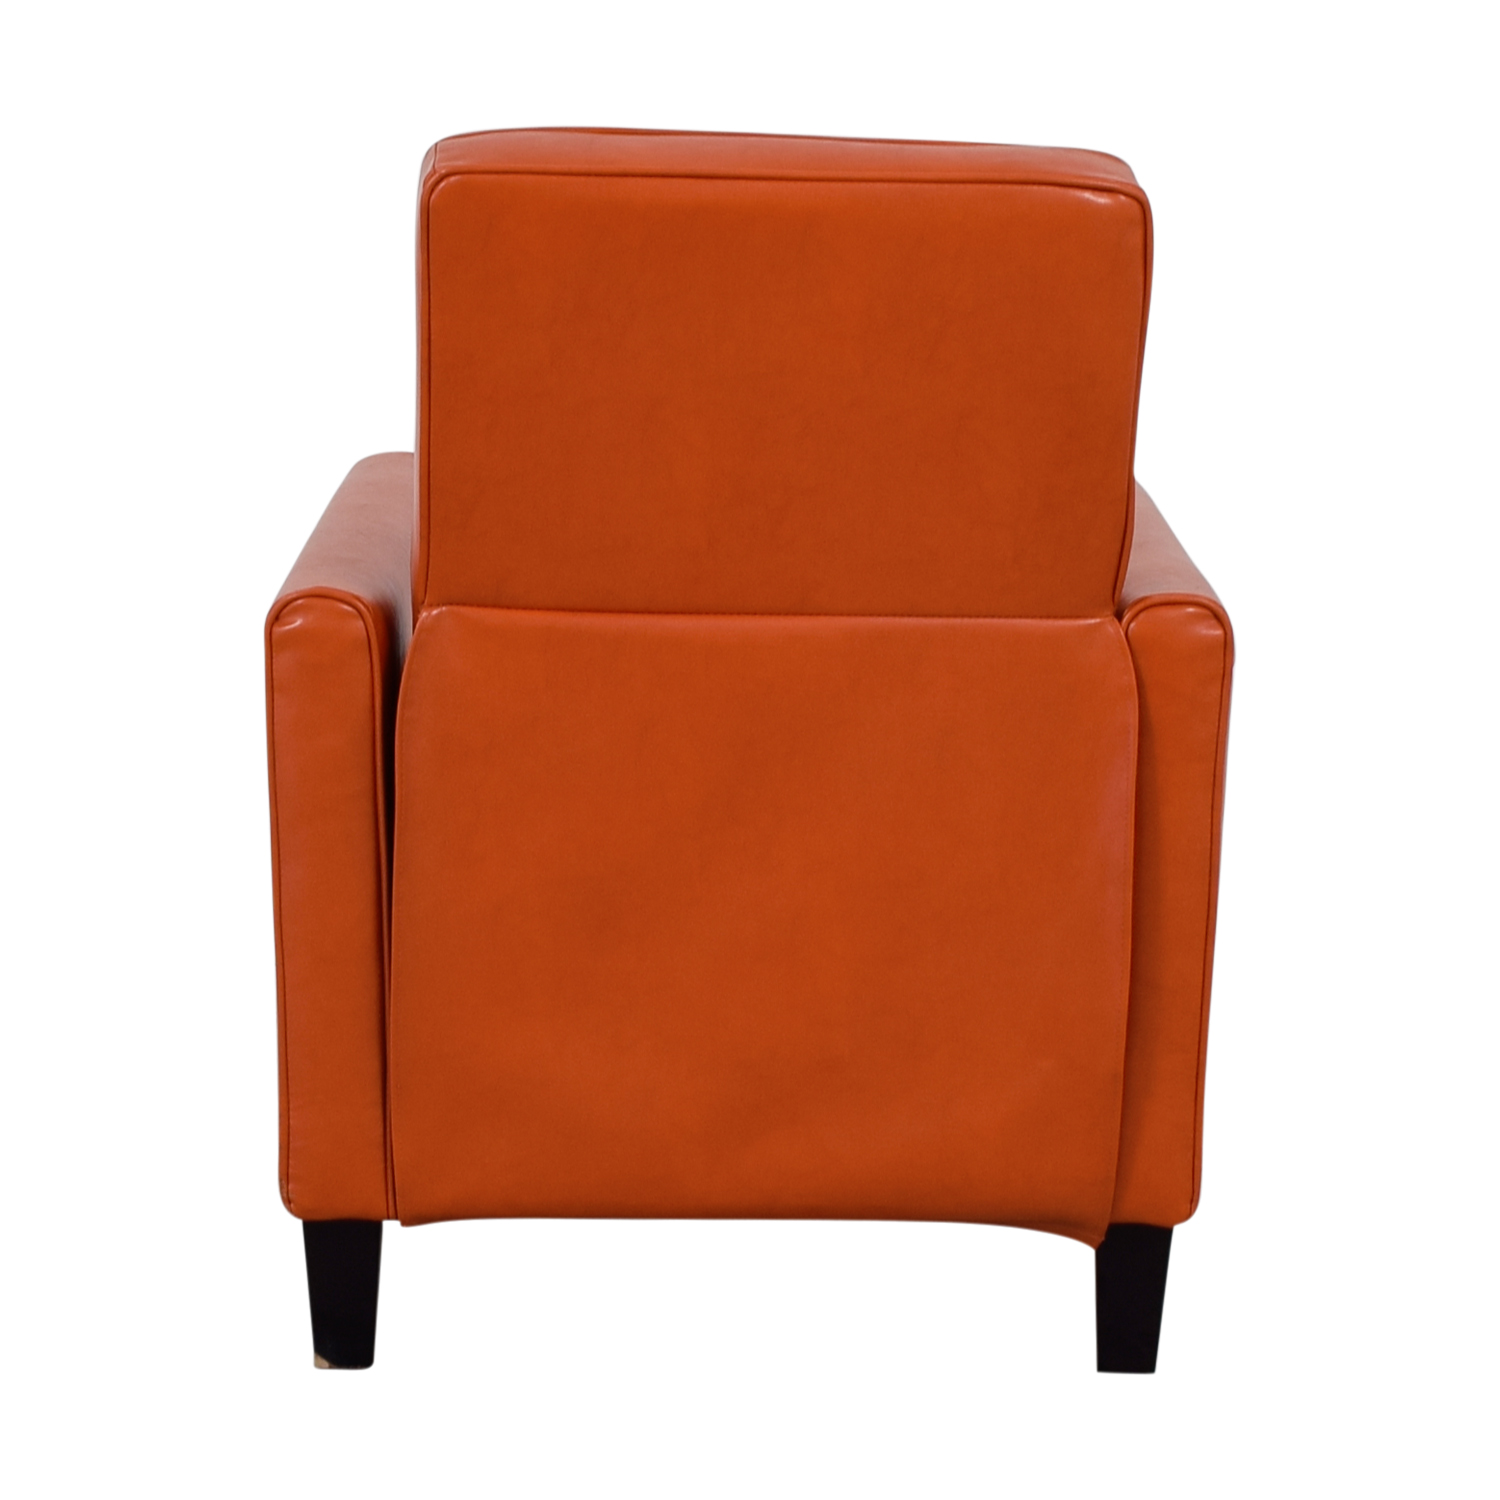 ... Christopher Knight Home Christopher Knight Home Darvis Orange Bonded  Leather Recliner Club Chair ...